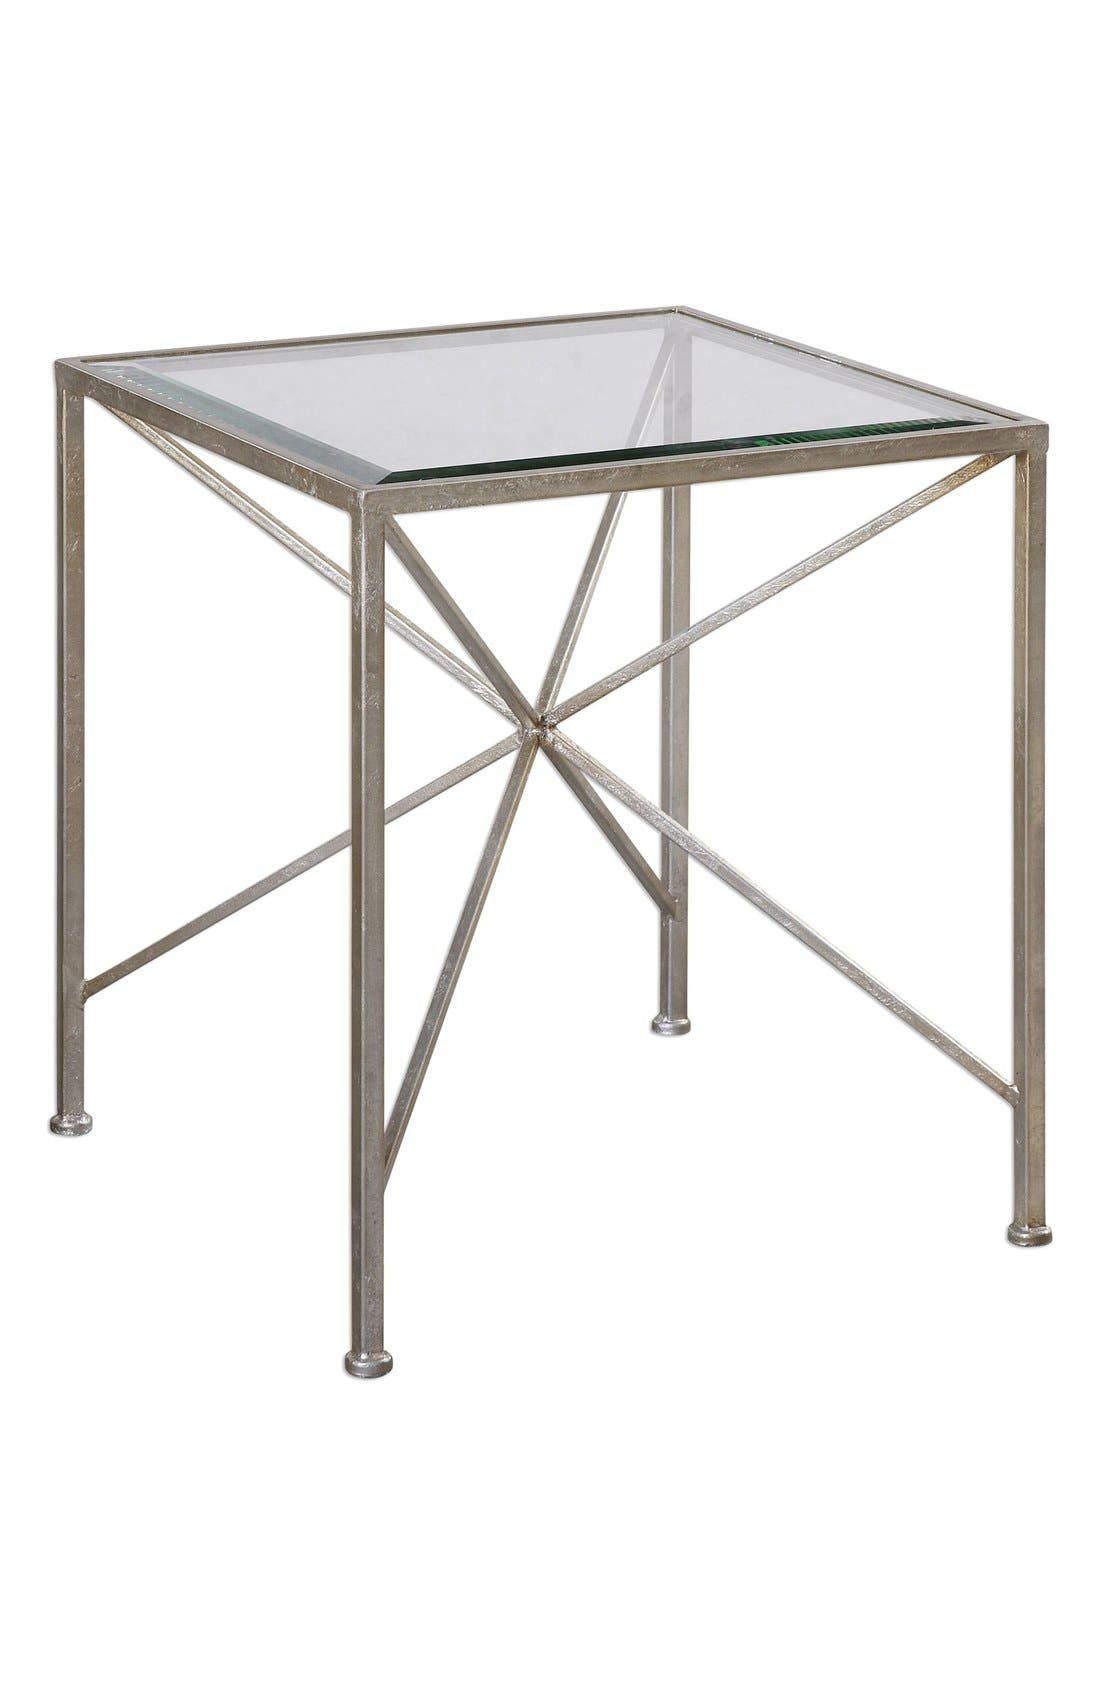 Alternate Image 1 Selected - Uttermost Antiqued Silvertone Cube Table